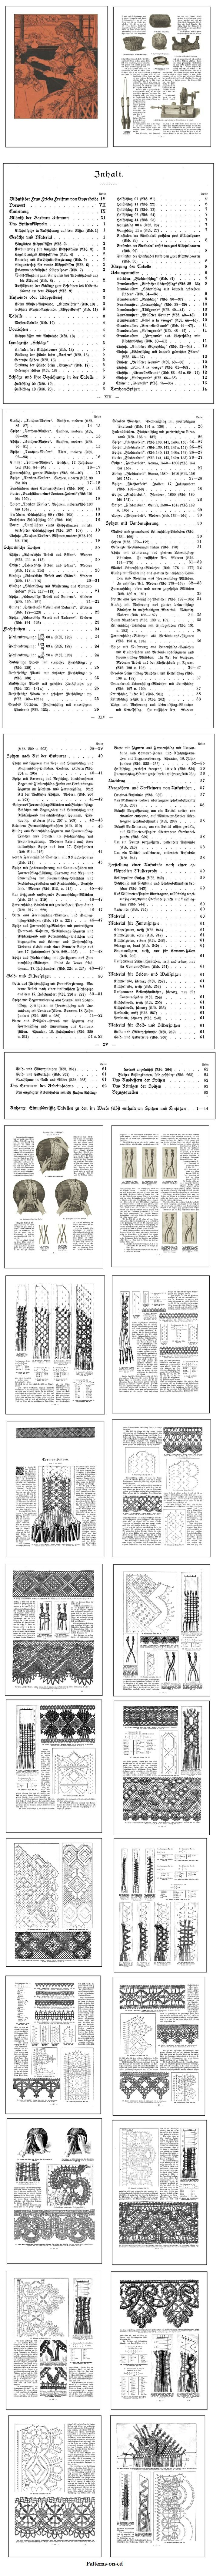 CD ROM Title:  German Bobbin Lace Making, 1898.     This publication is in German language. Though this is not in English, the impressive illustrations and patterns make it a worthy addition to our selection of bobbin lacemaking related CD titles. Click on the image for more information